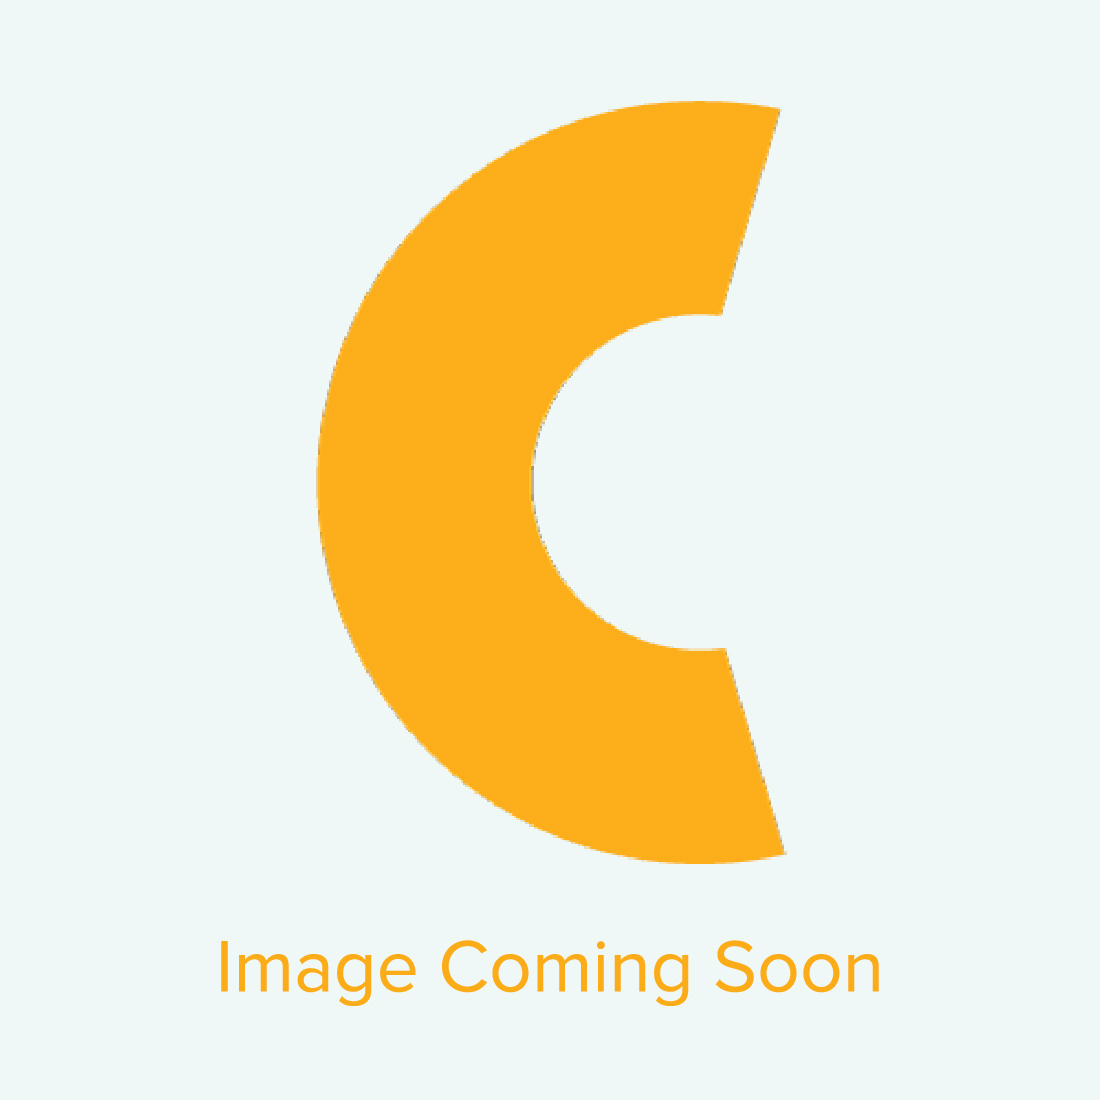 "Graphtec CE6000-60 PLUS 24"" Vinyl Cutter with FDC Sign Vinyl Package"